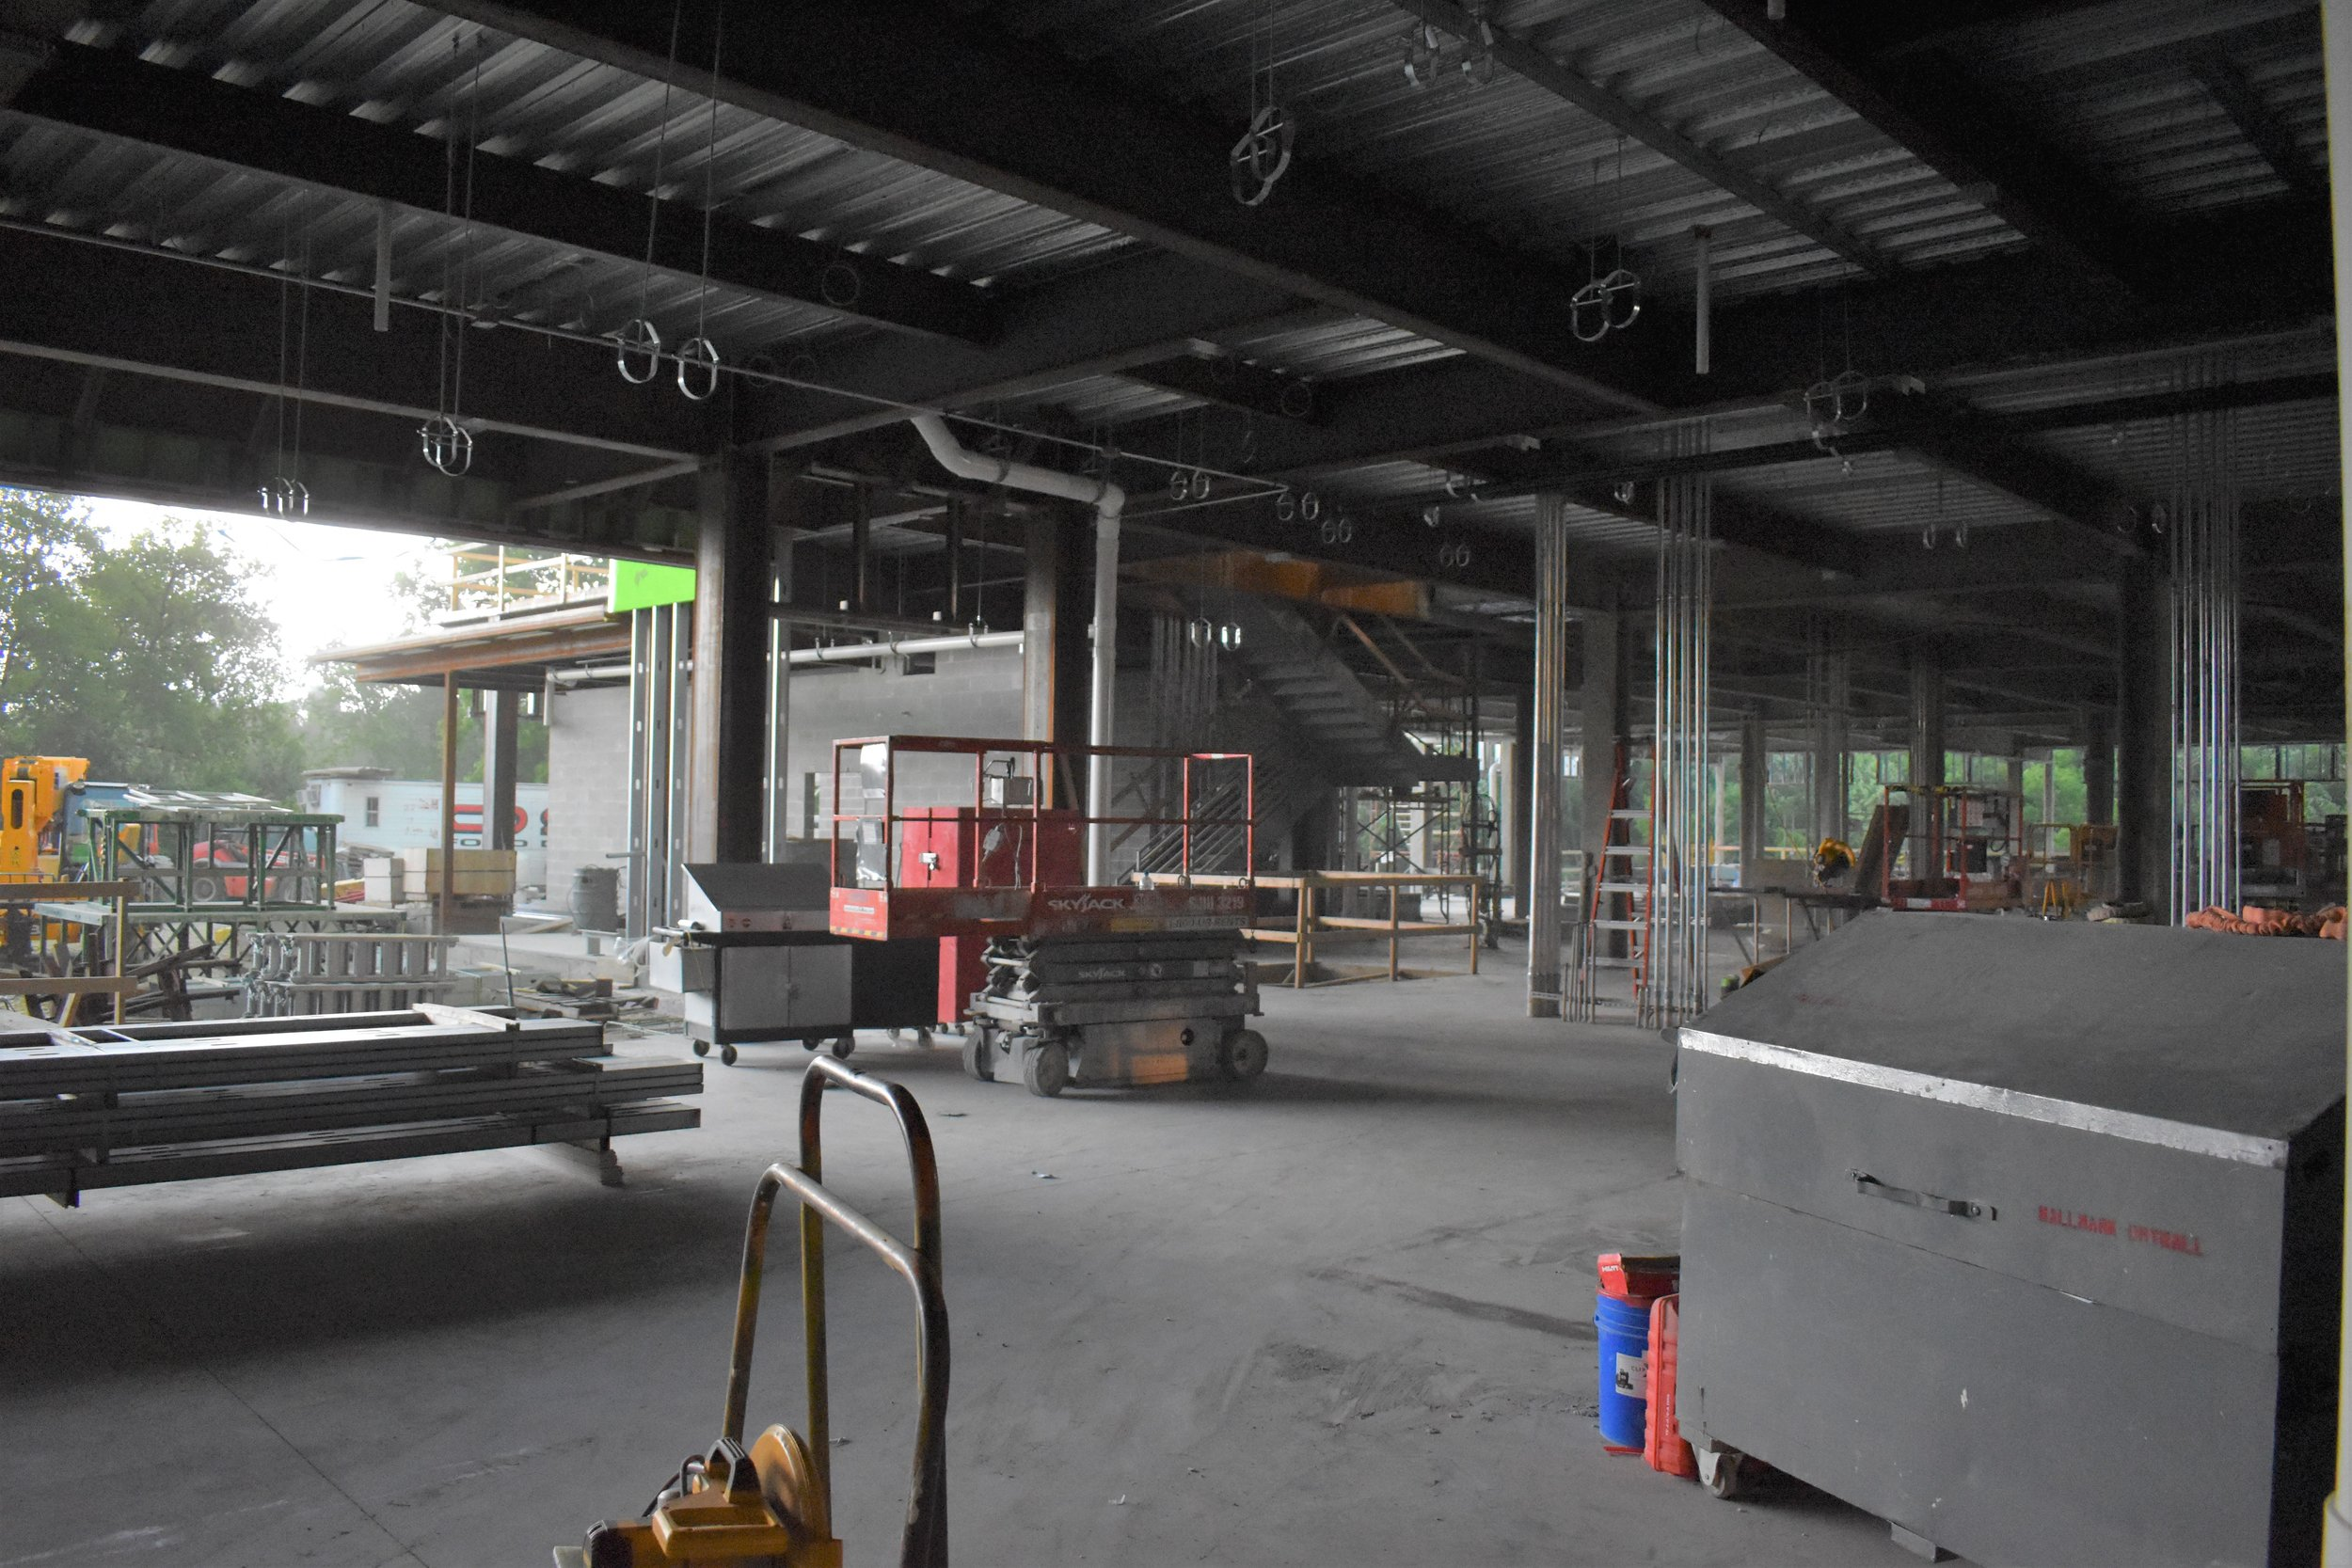 Ground floor, looking out towards the receiving area